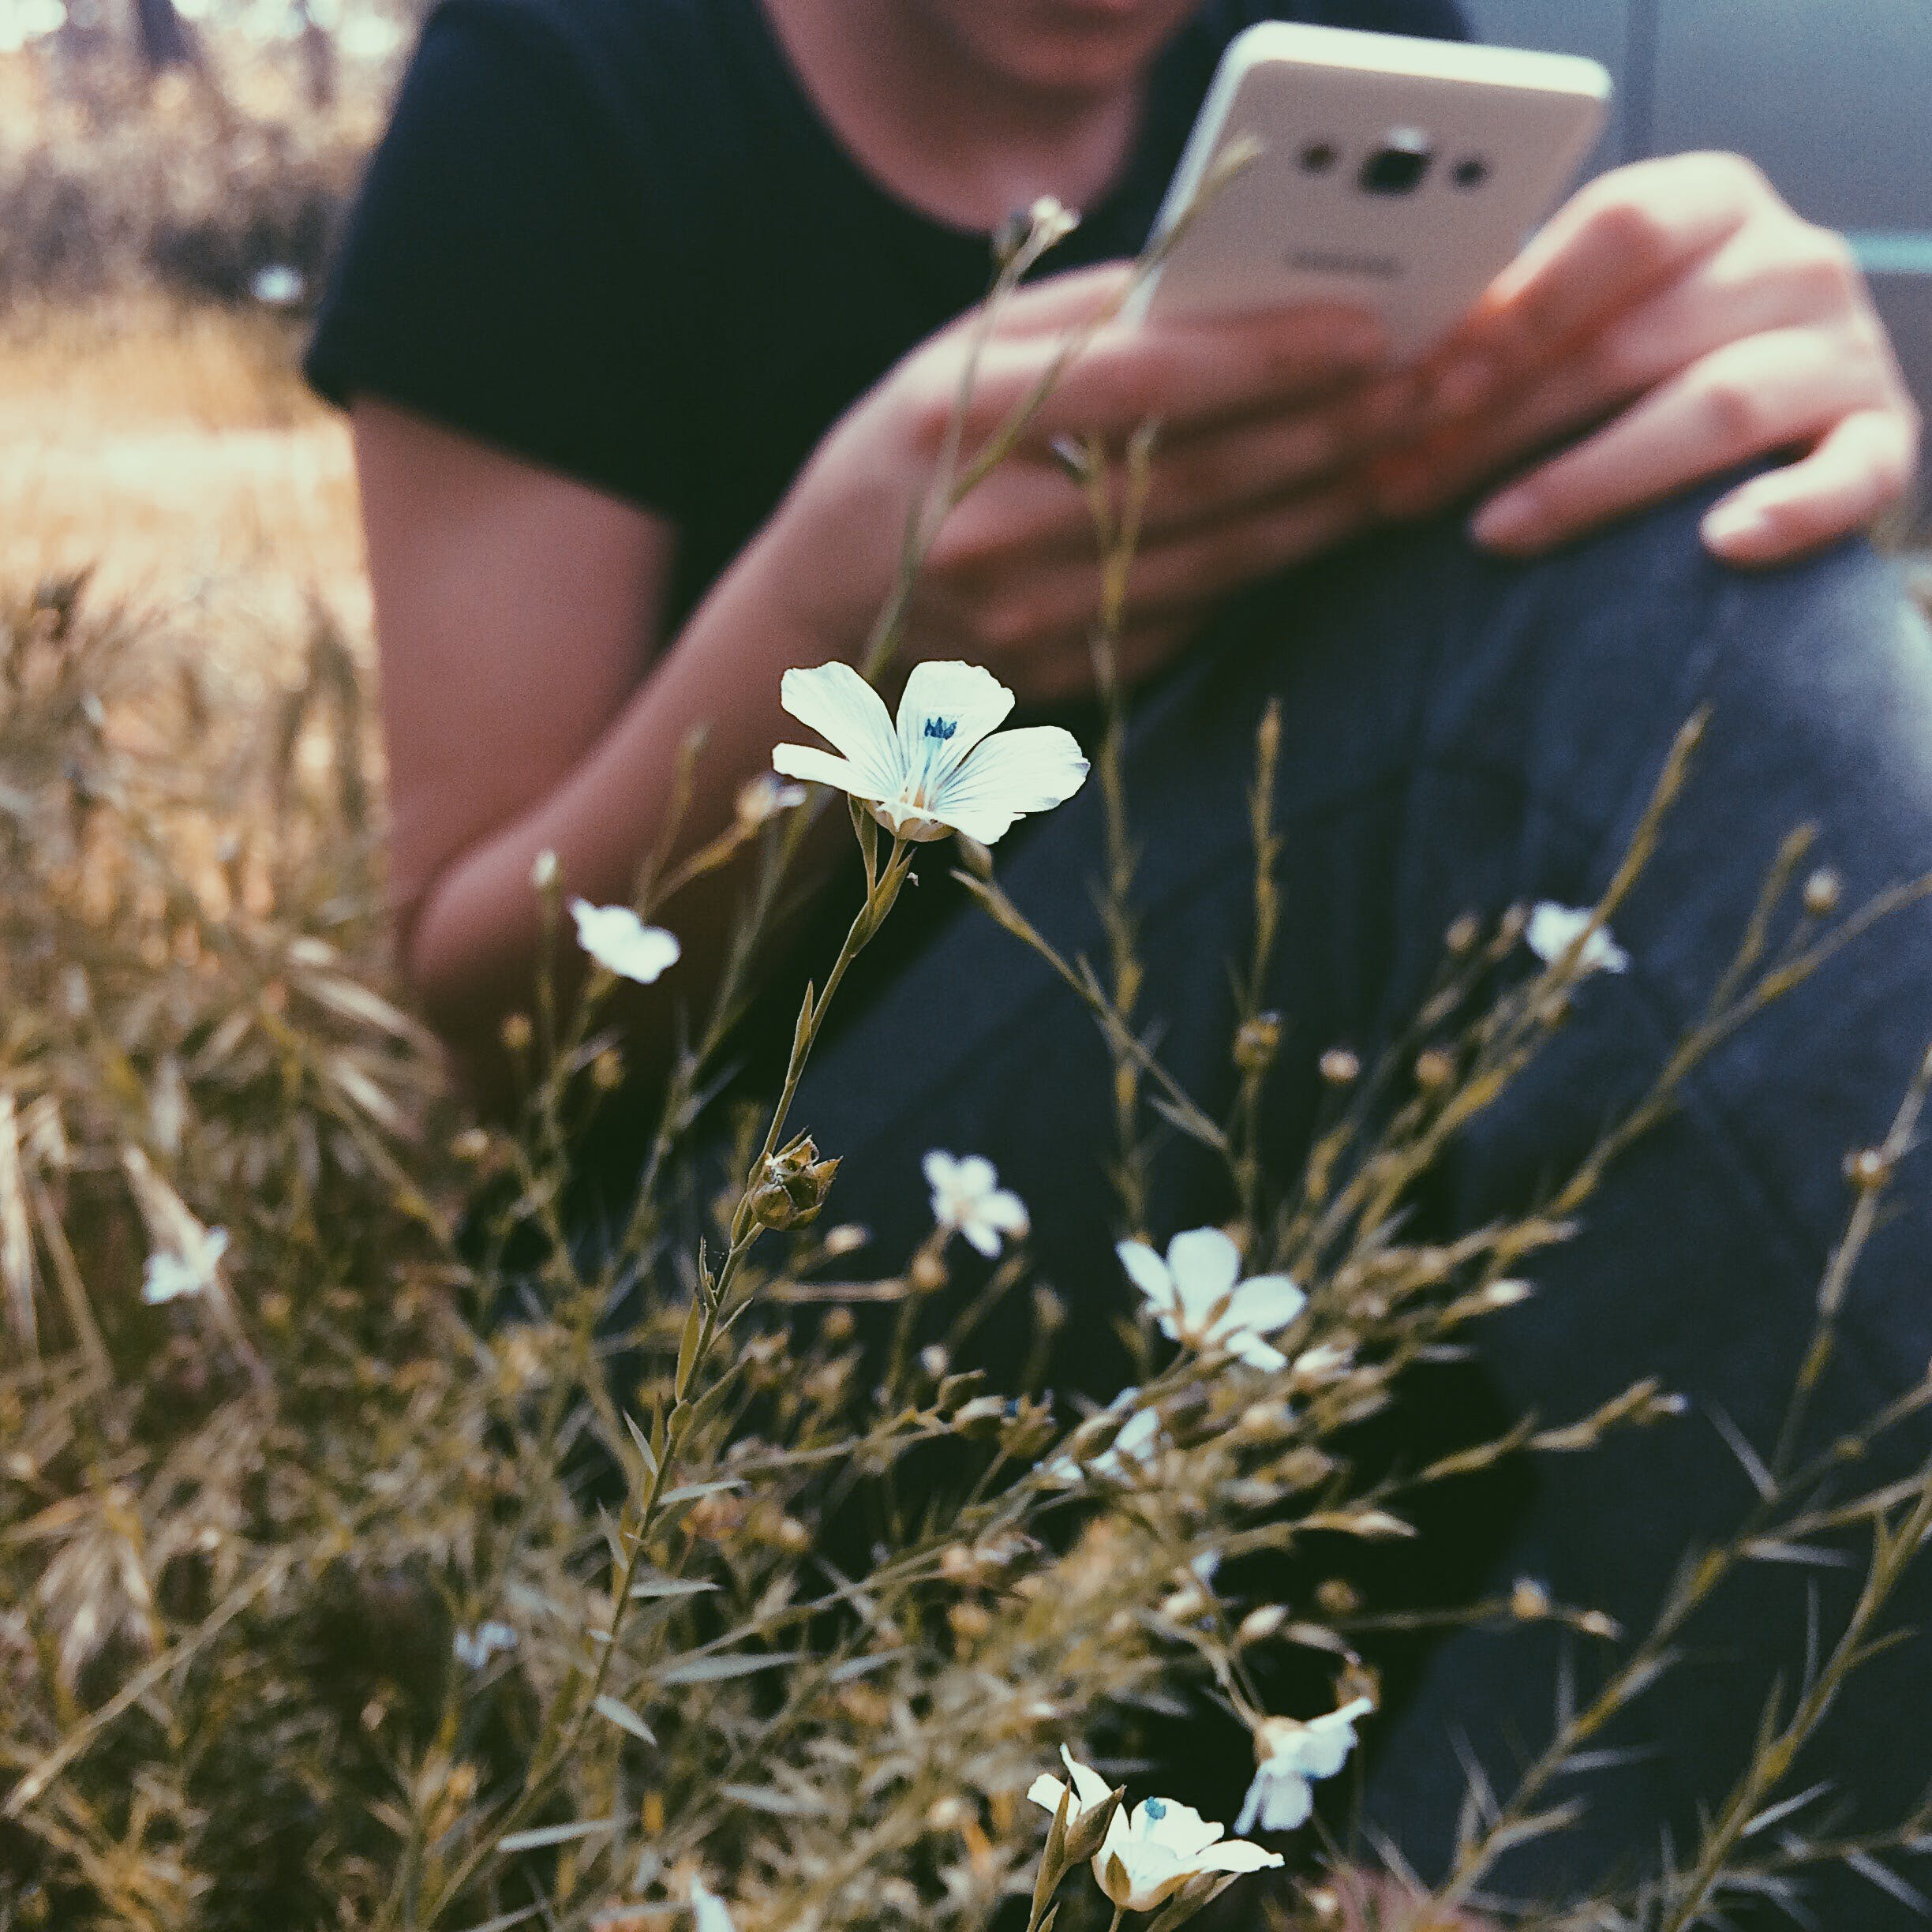 Selective Focus Photography of White Petaled Flowers Near Woman Holding Smartphone